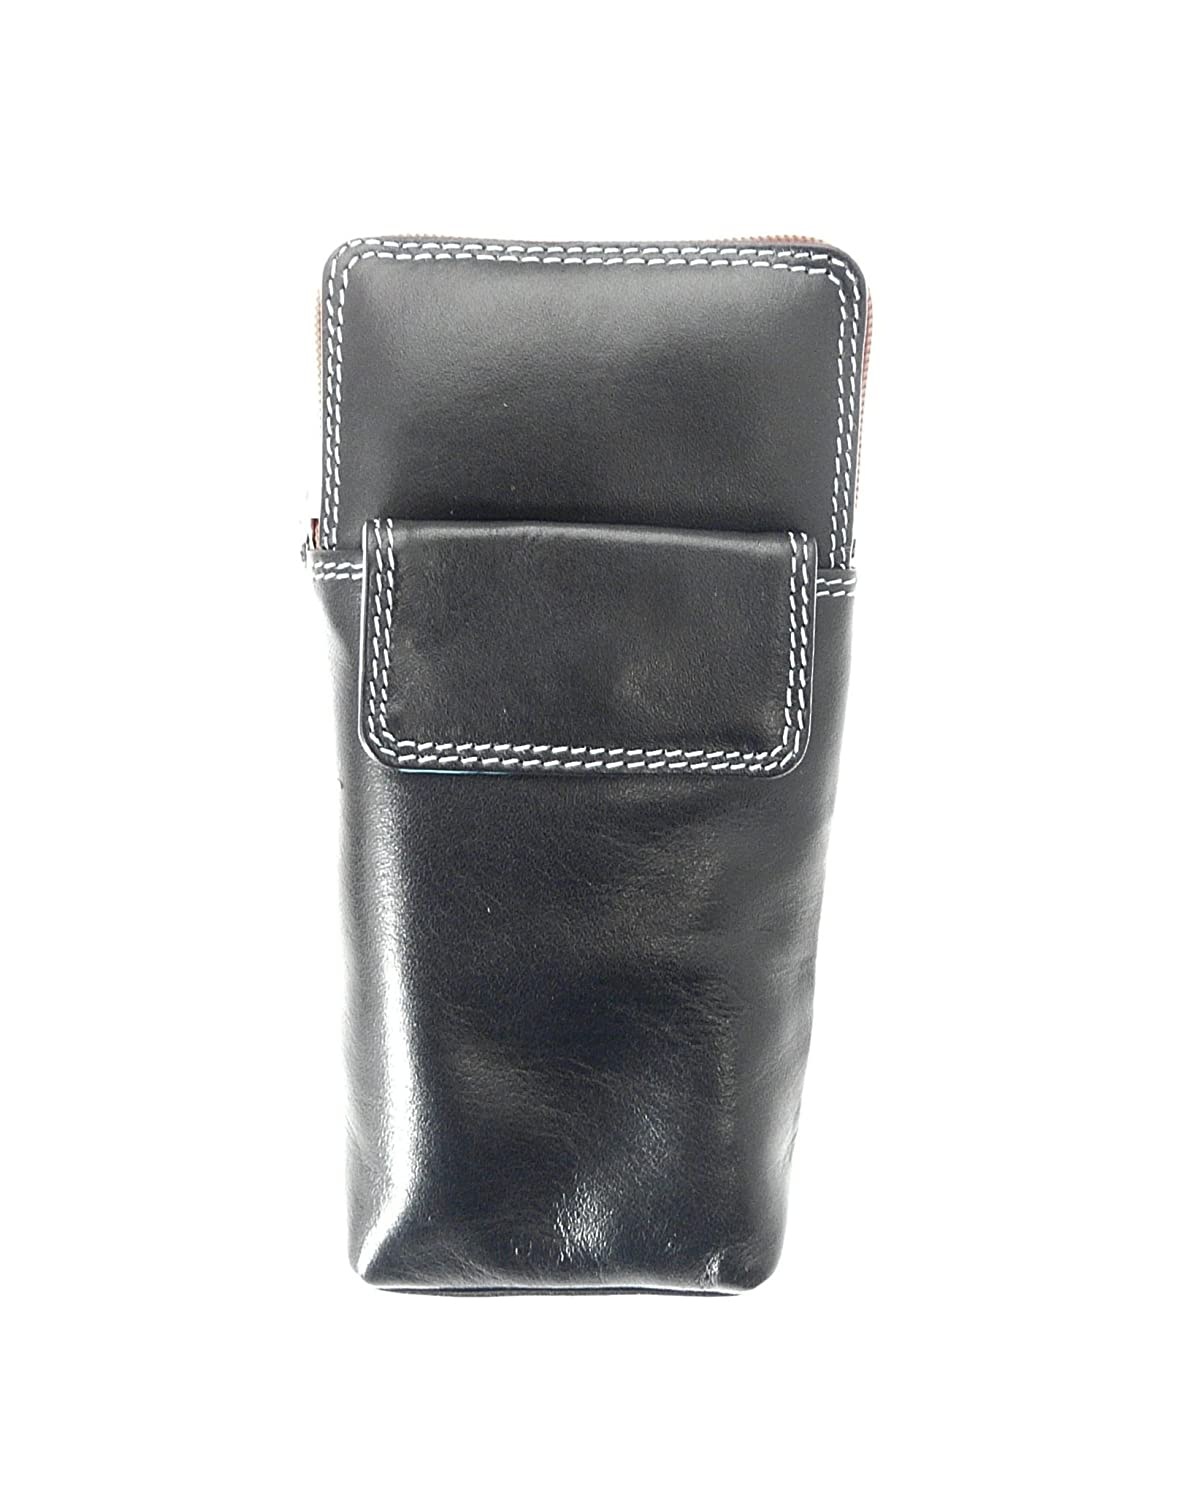 High Quality Soft Leather Spectacle / Glasses Case Holder. Black & Multi Colour.